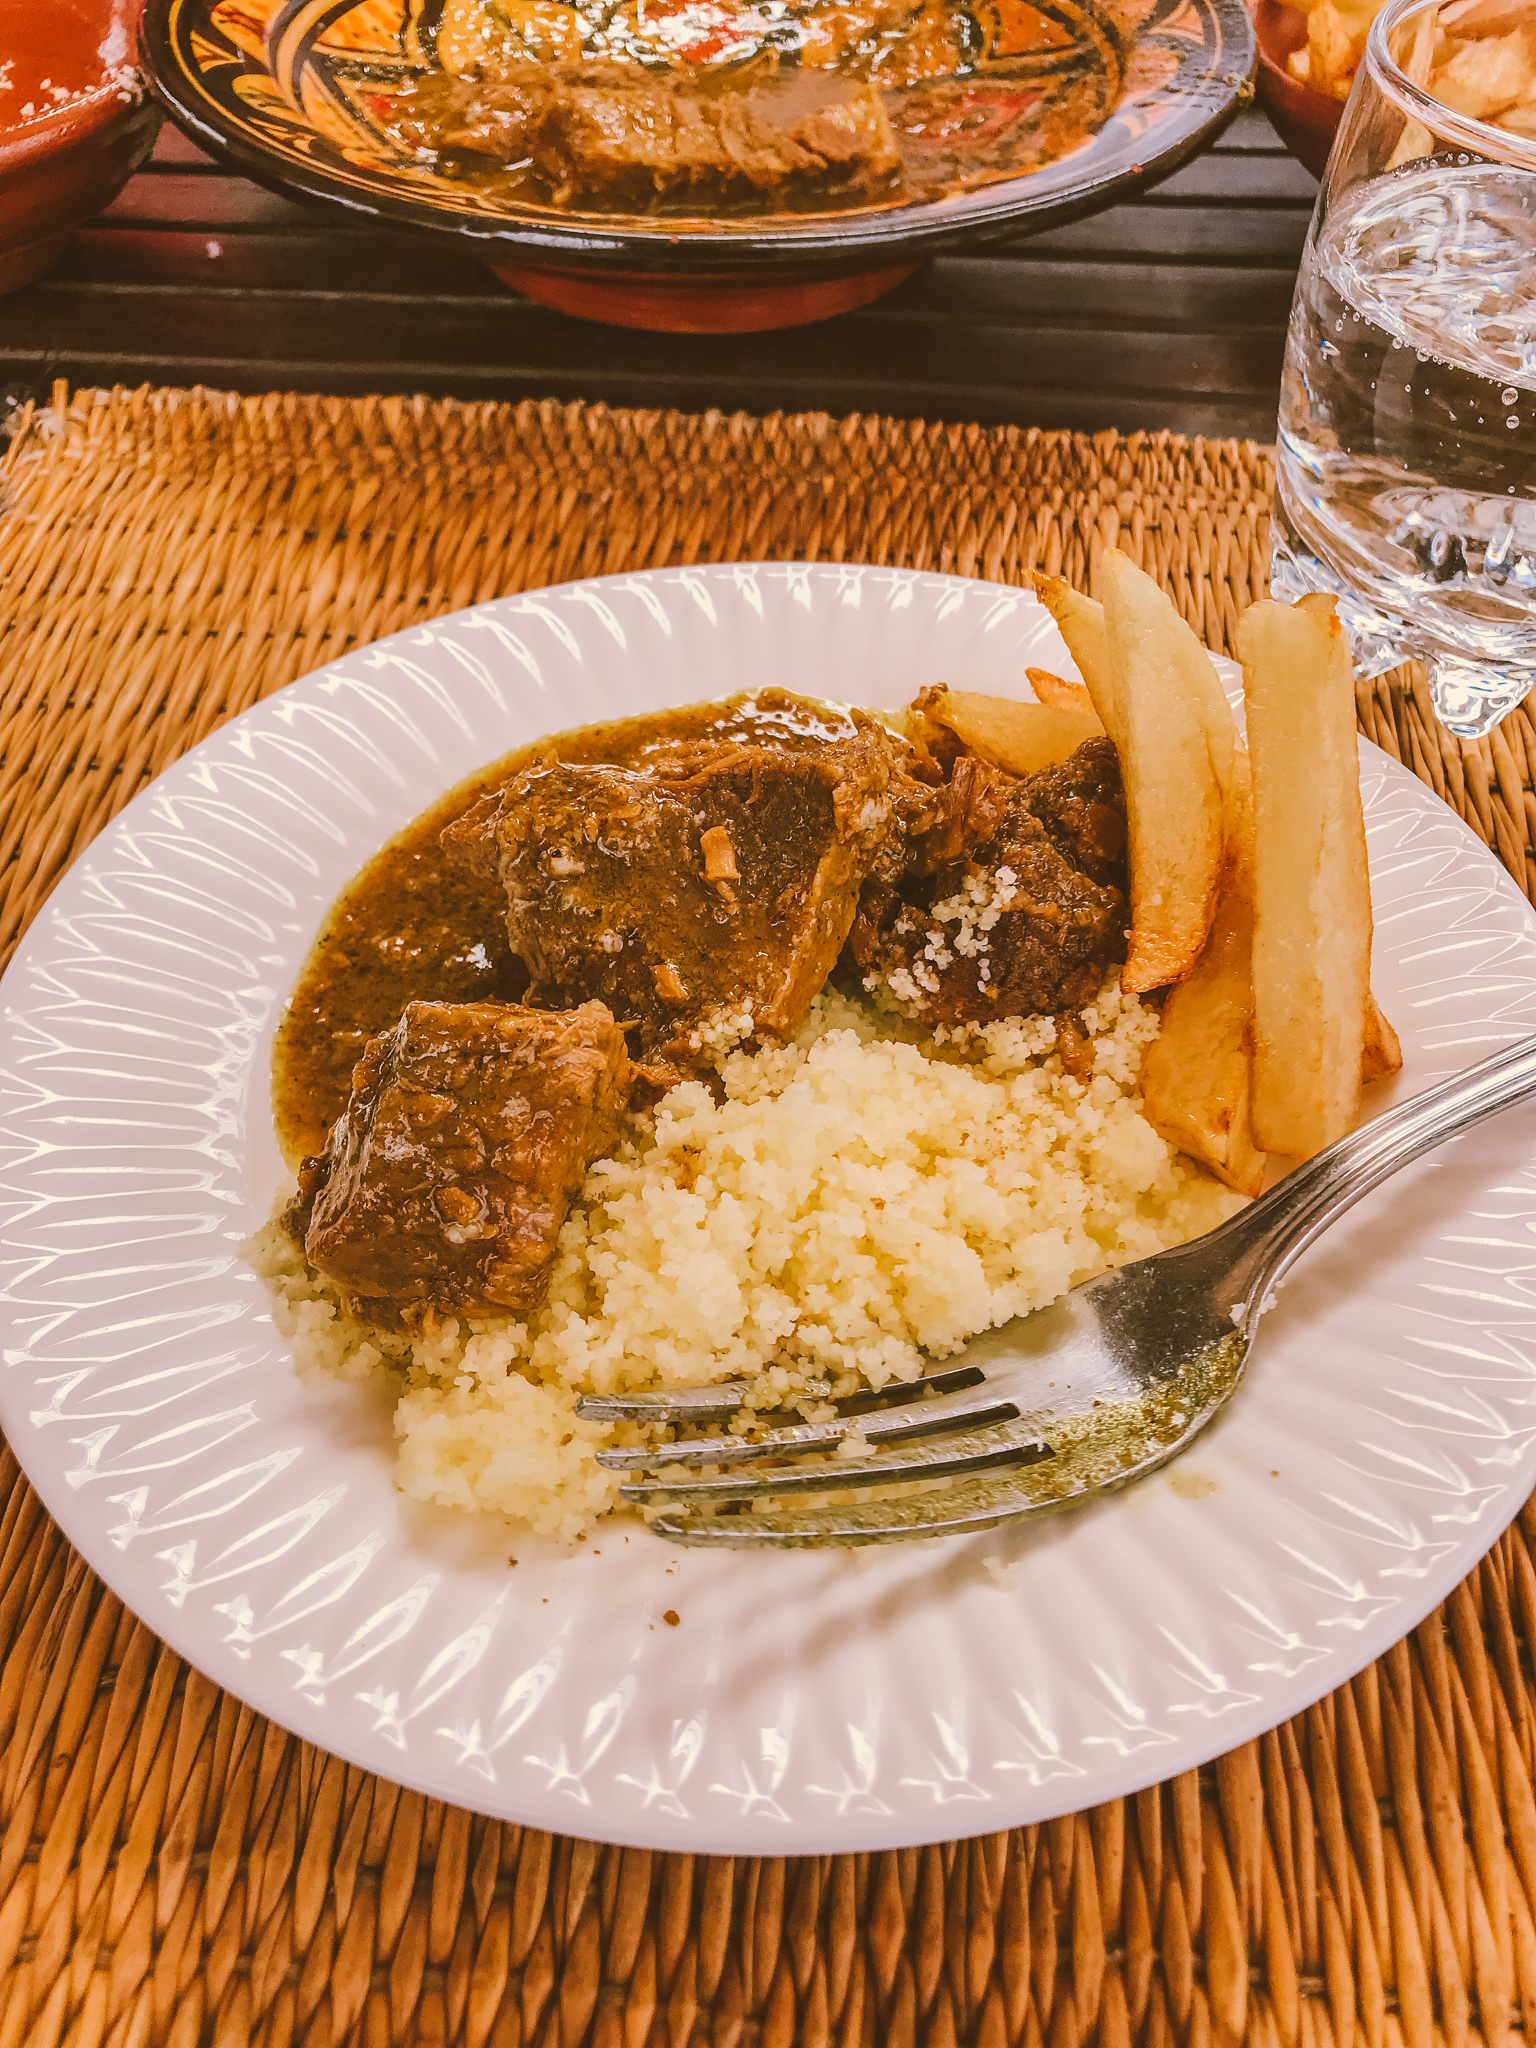 The Foodies Guide to Restaurants in Marrakech- Monique McHugh Blog